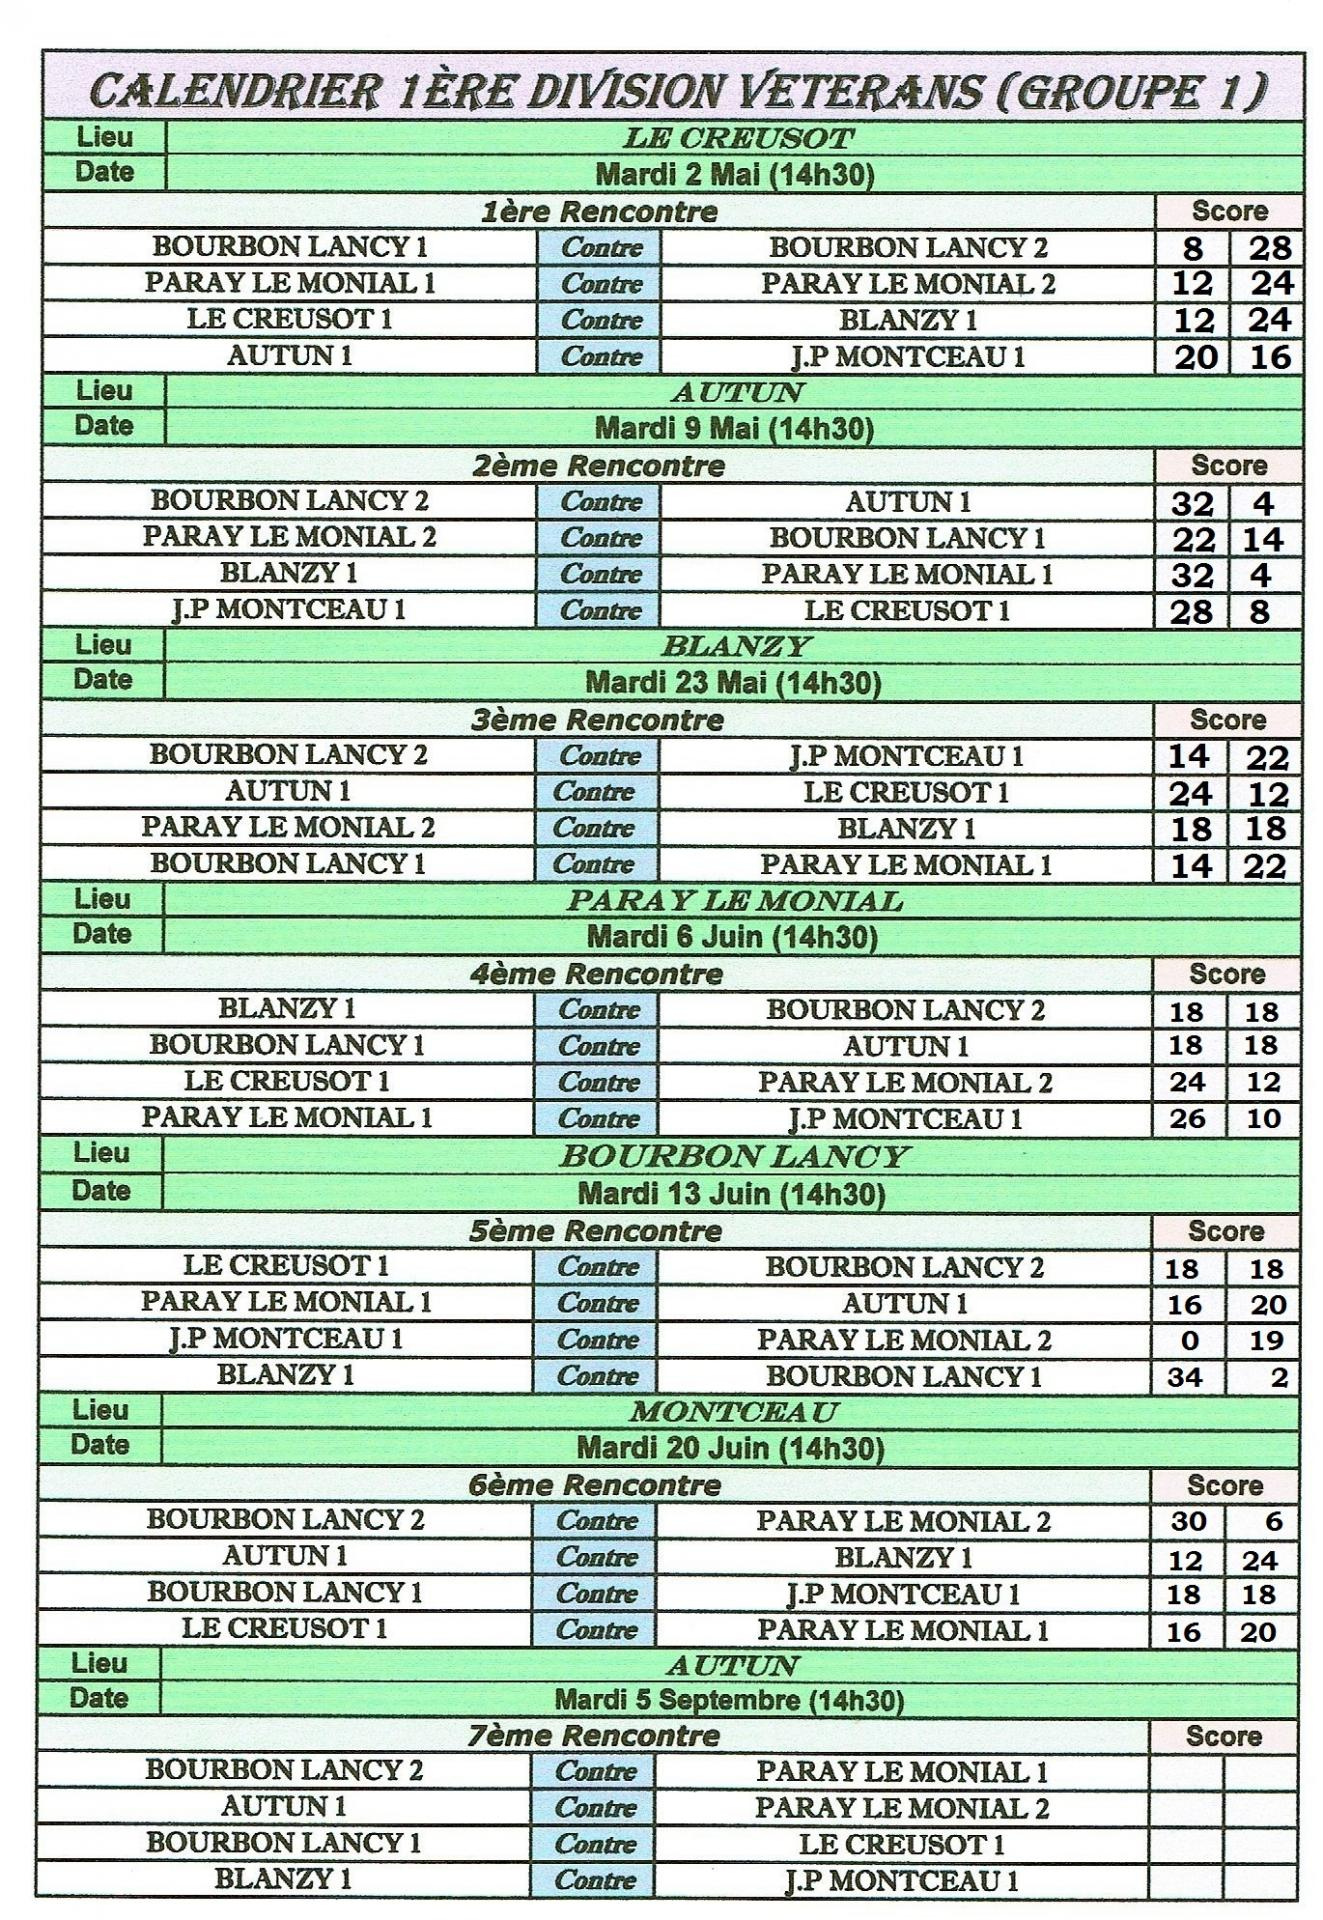 Calendrier veterans division 11